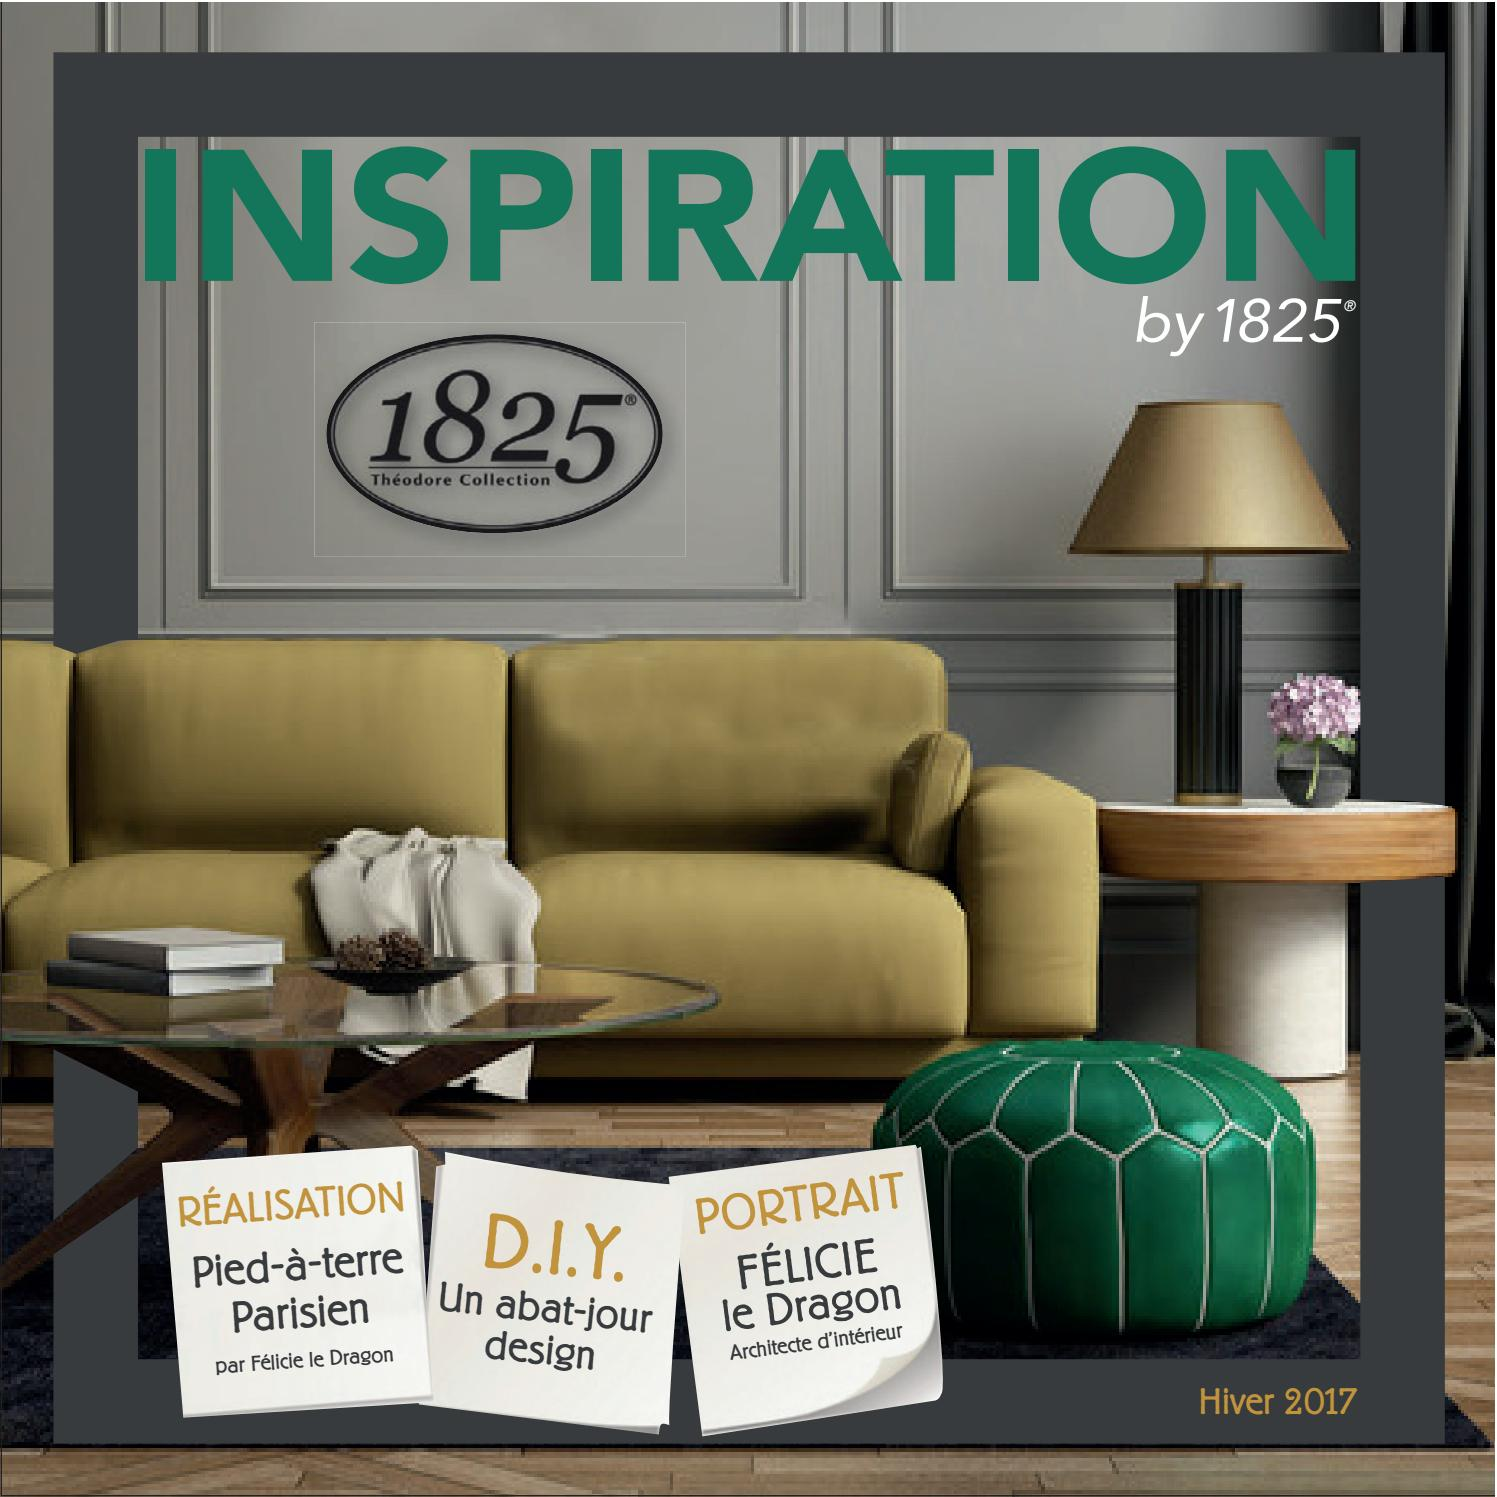 1825 Inspirations Magazine Hiver 2017 By Peintures 1825 Issuu